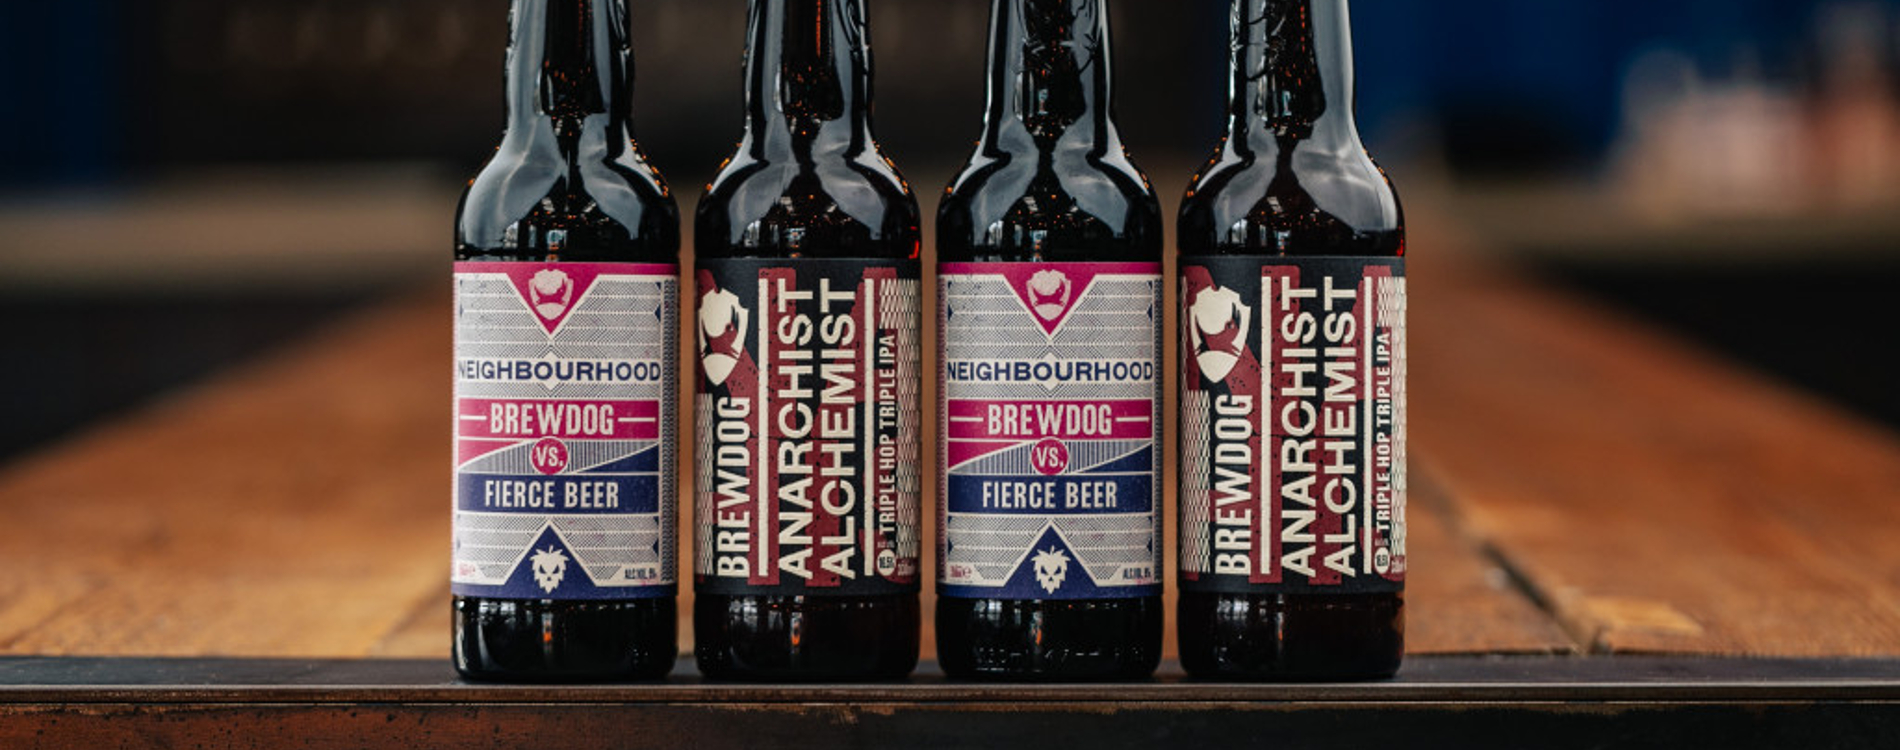 ANARCHIST ALCHEMIST AND FIERCE BEER: NEIGHBOURHOOD